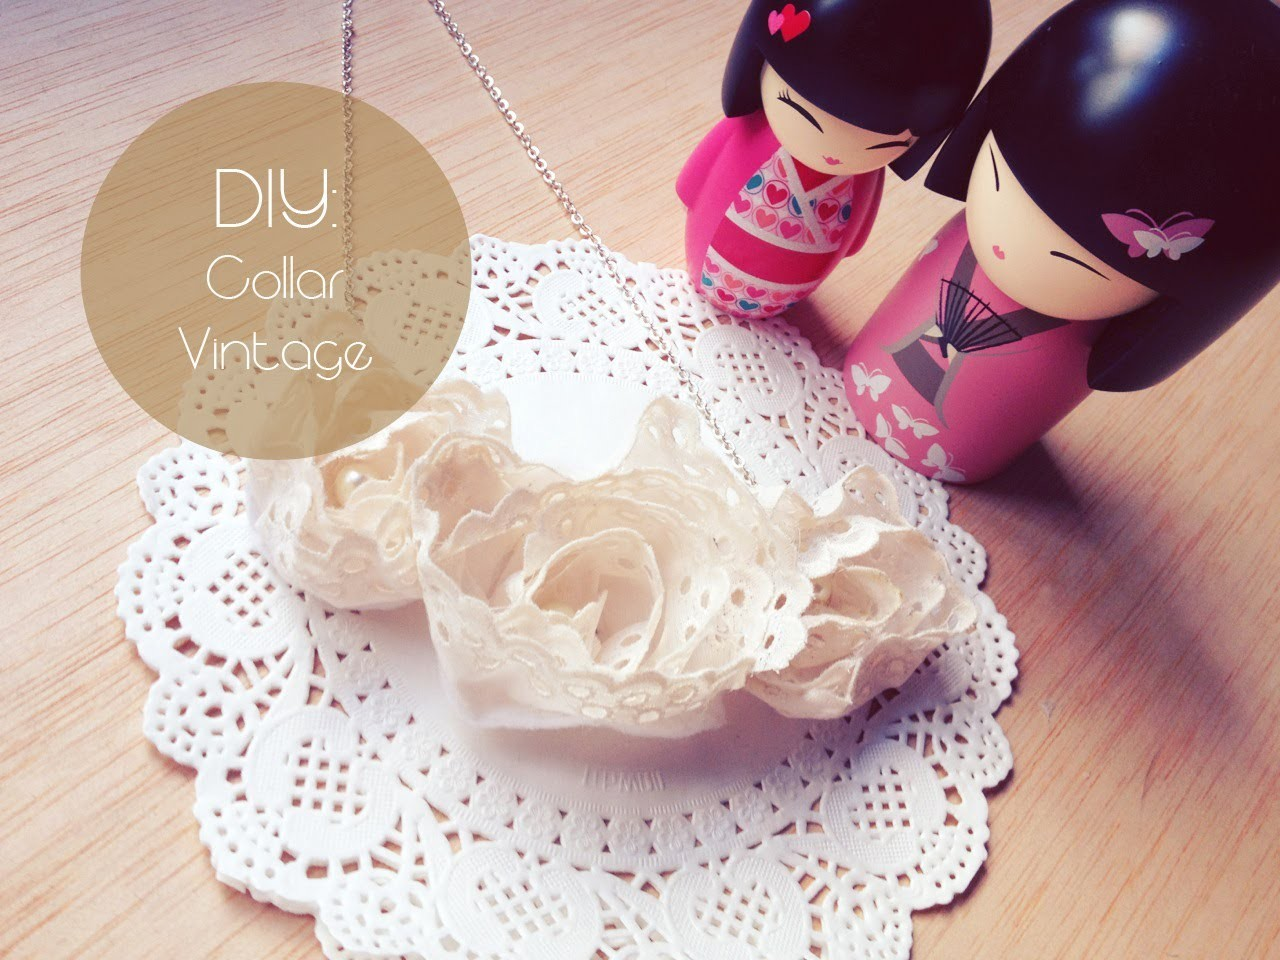 DIY: Collar Vintage. Vintage Necklace